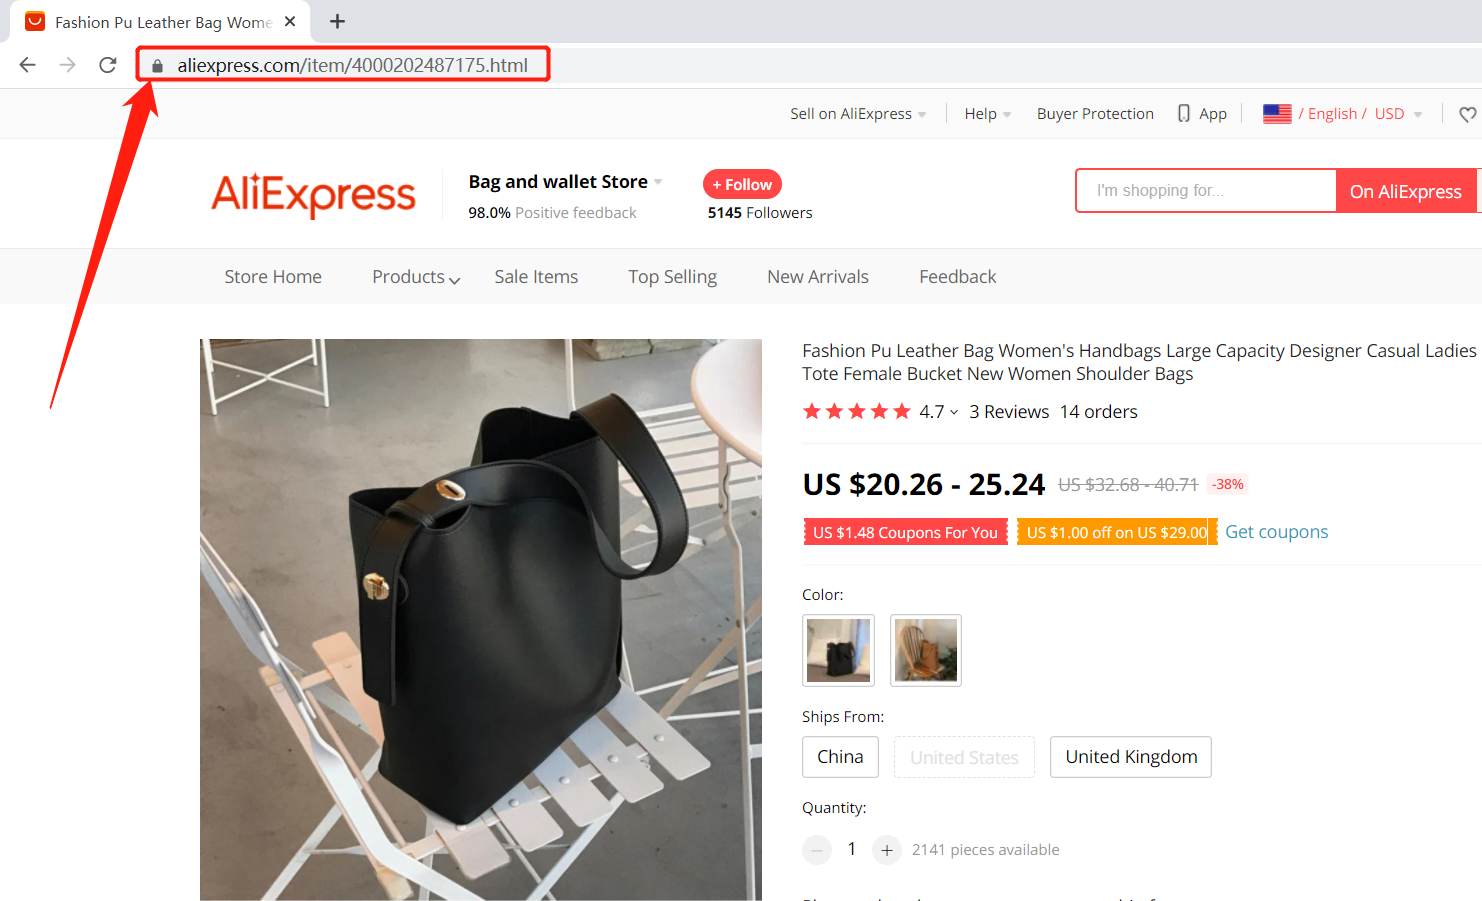 Connect AliExpress suppliers to your products with Woo DSers - Copy URL from AliExpress - Woo DSers